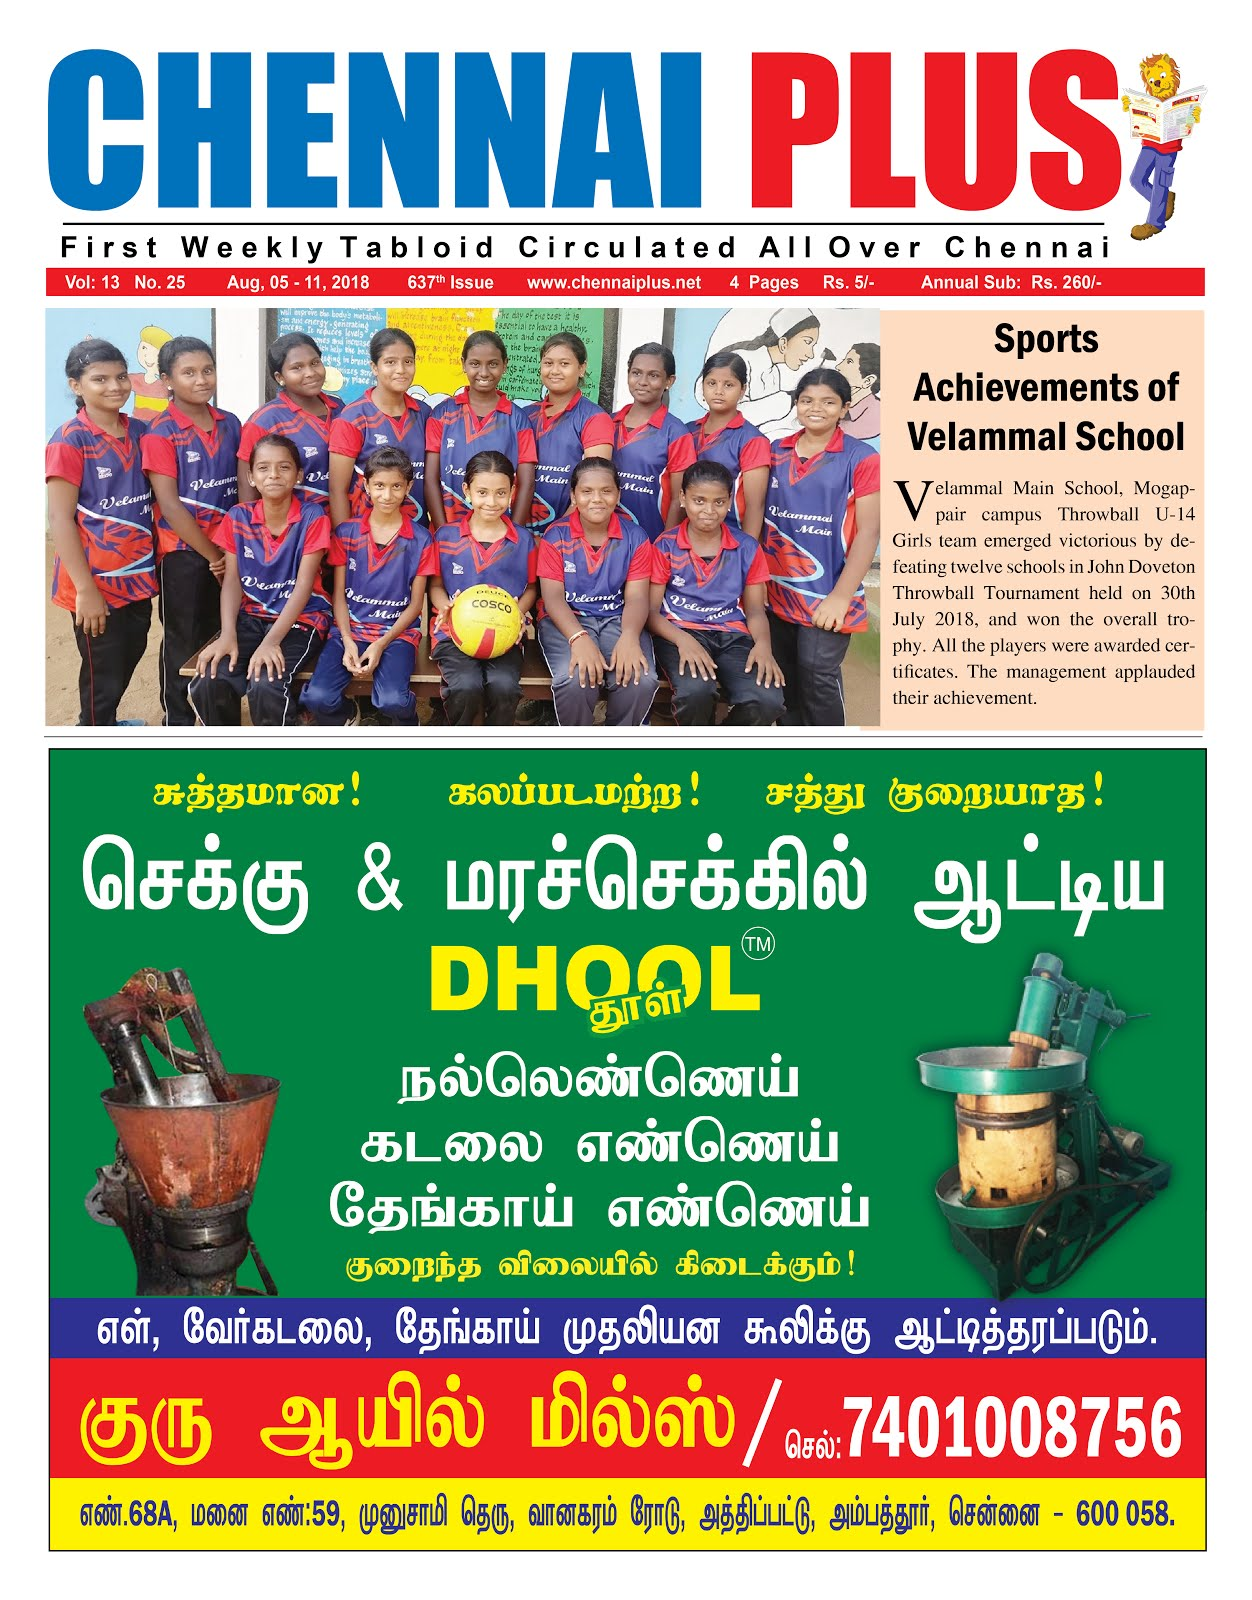 Chennai Plus_05.08.2018_Issue